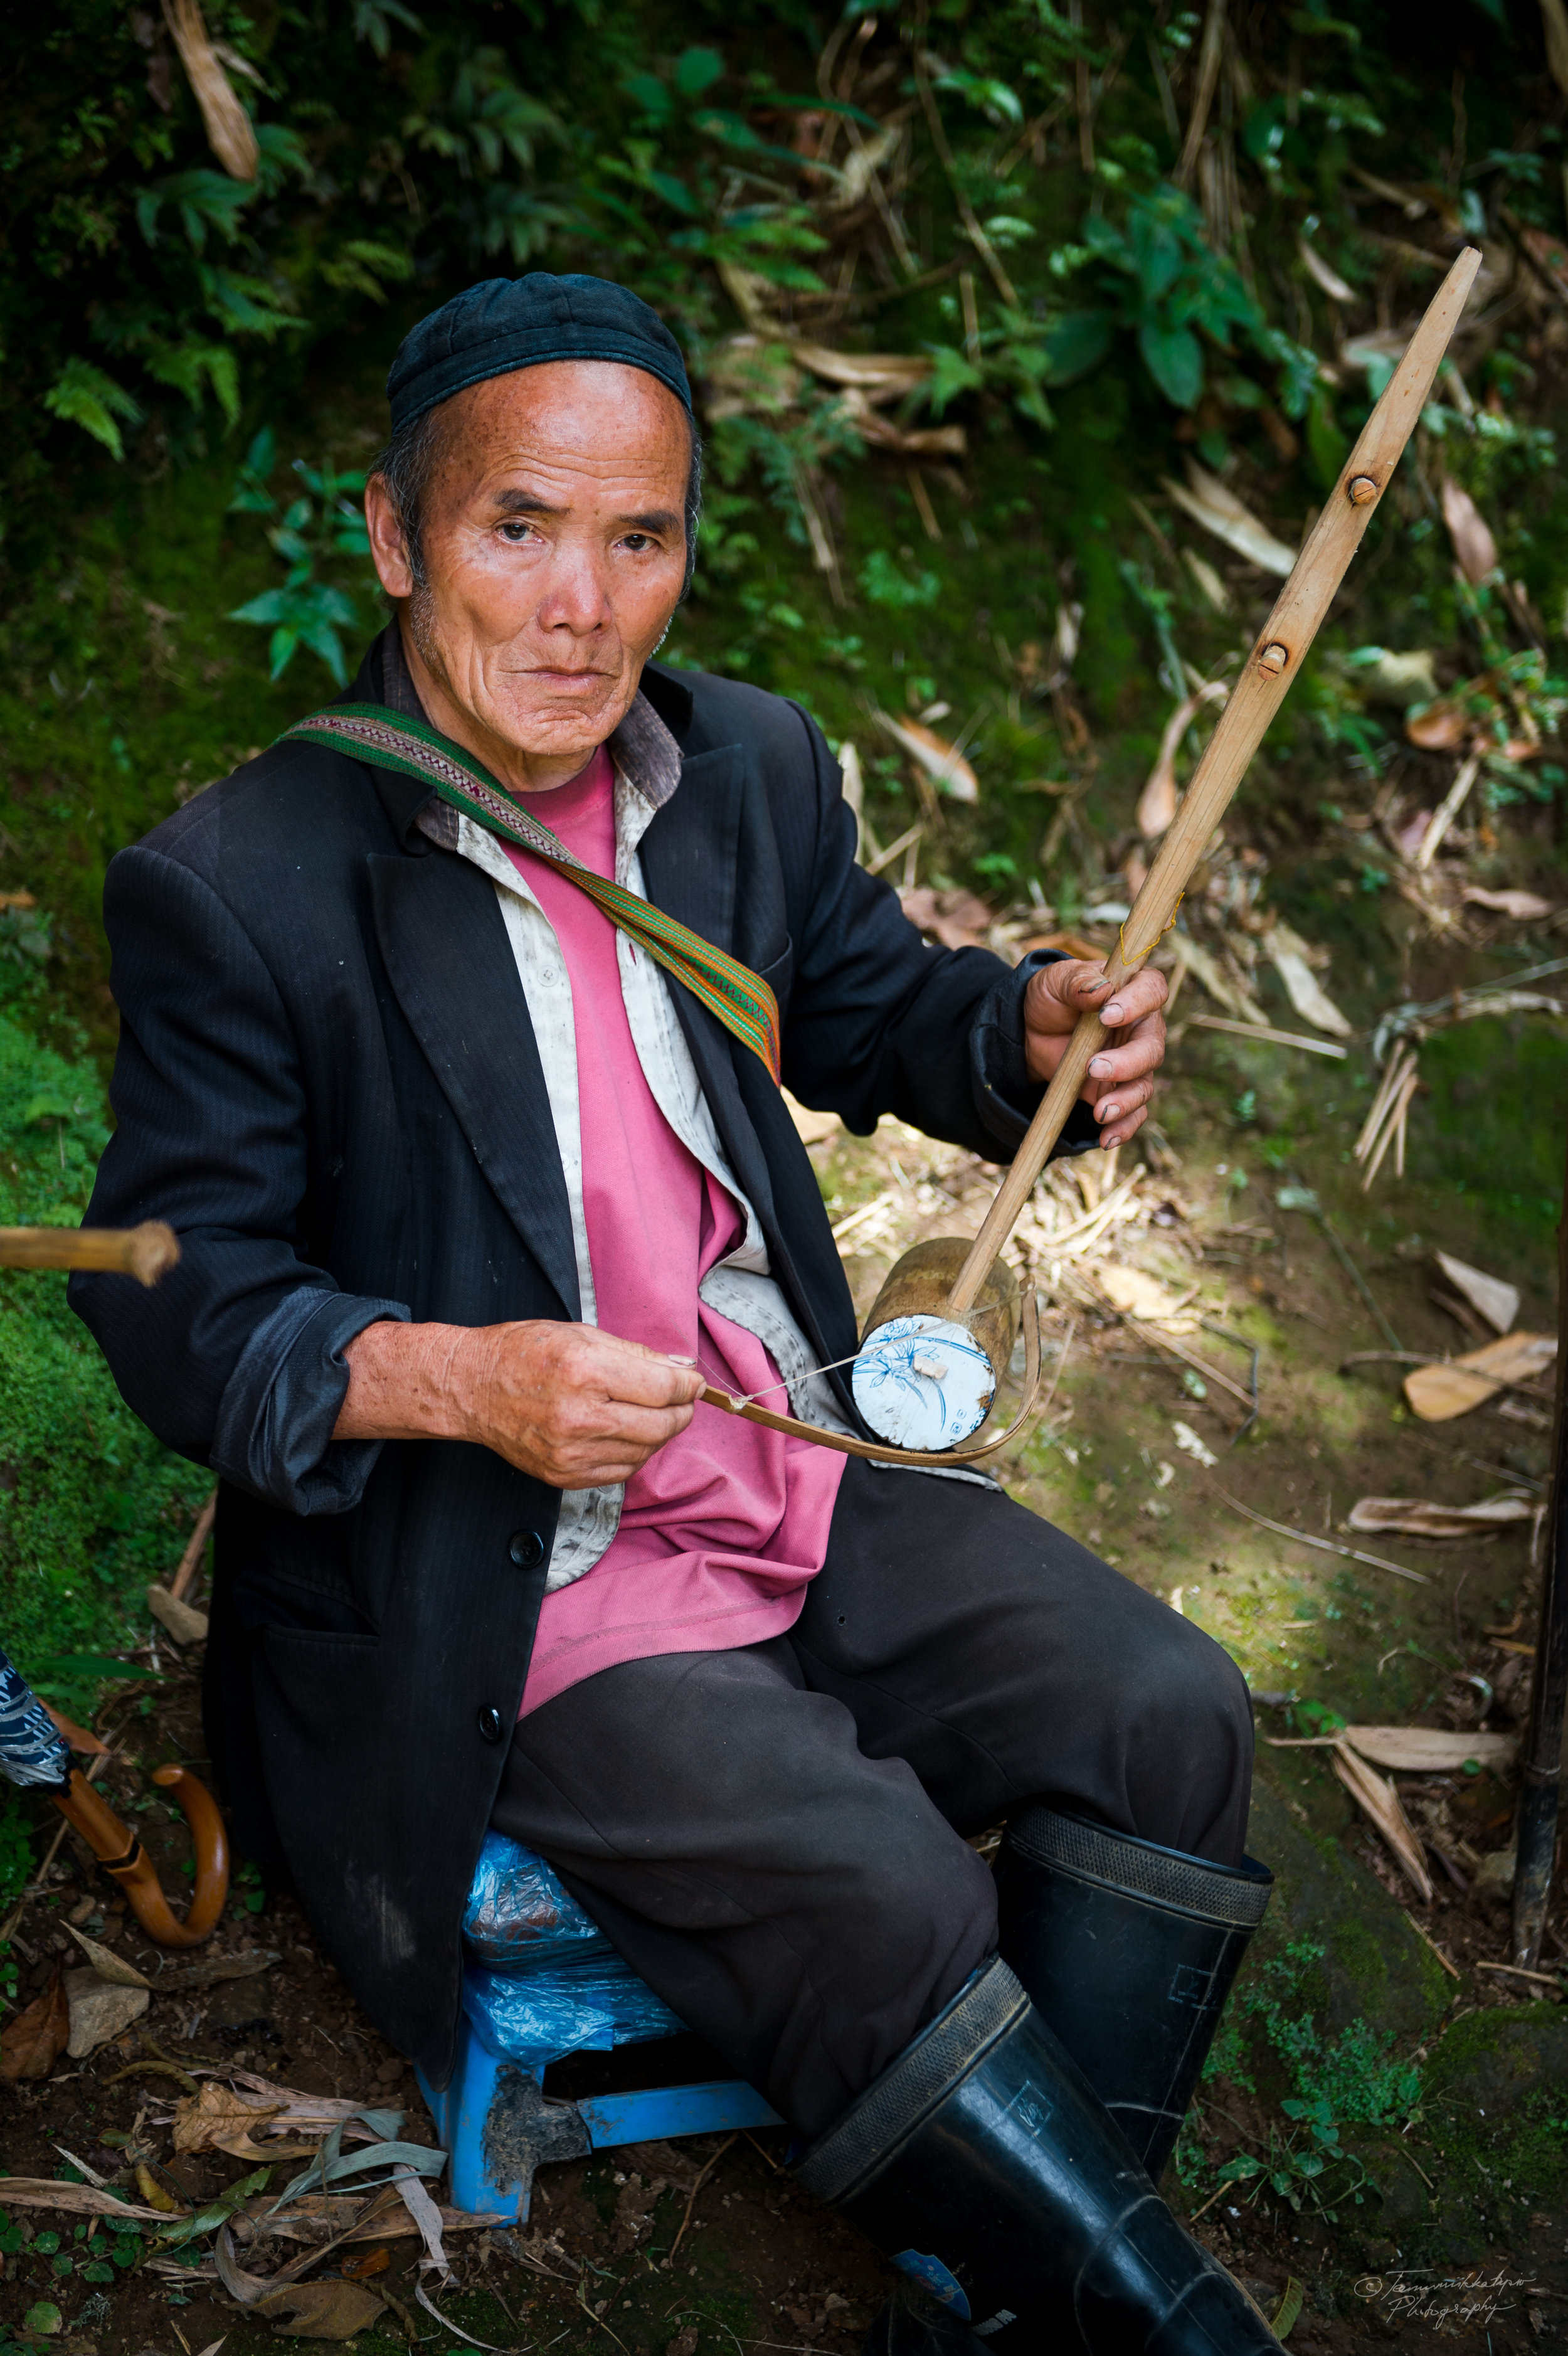 A man is playing a traditional two-stringed instrument called Dan ho